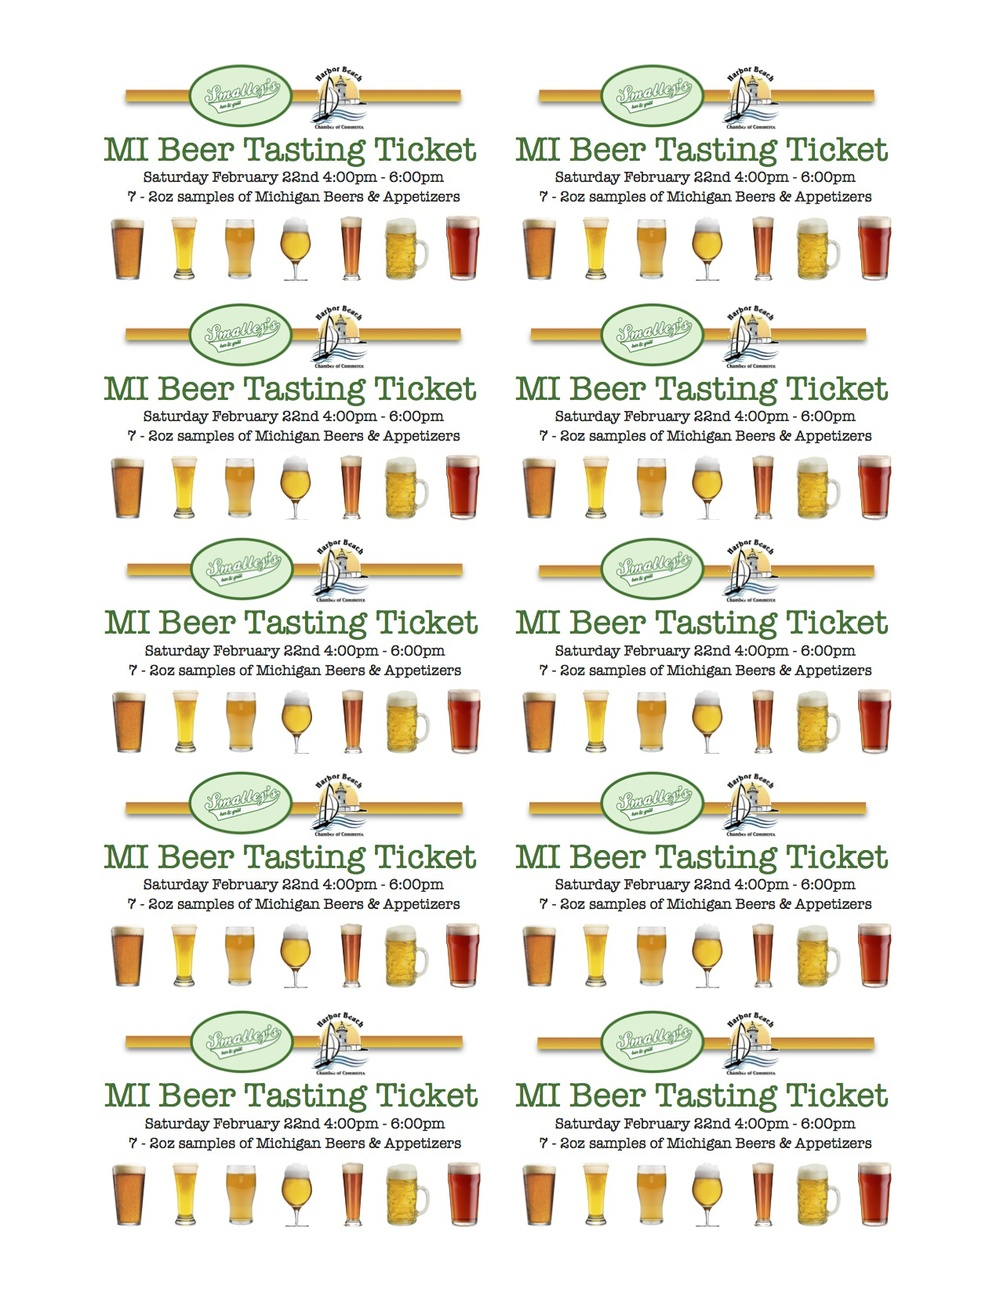 Smalleys Beer Tasting Tickets 2014.jpg